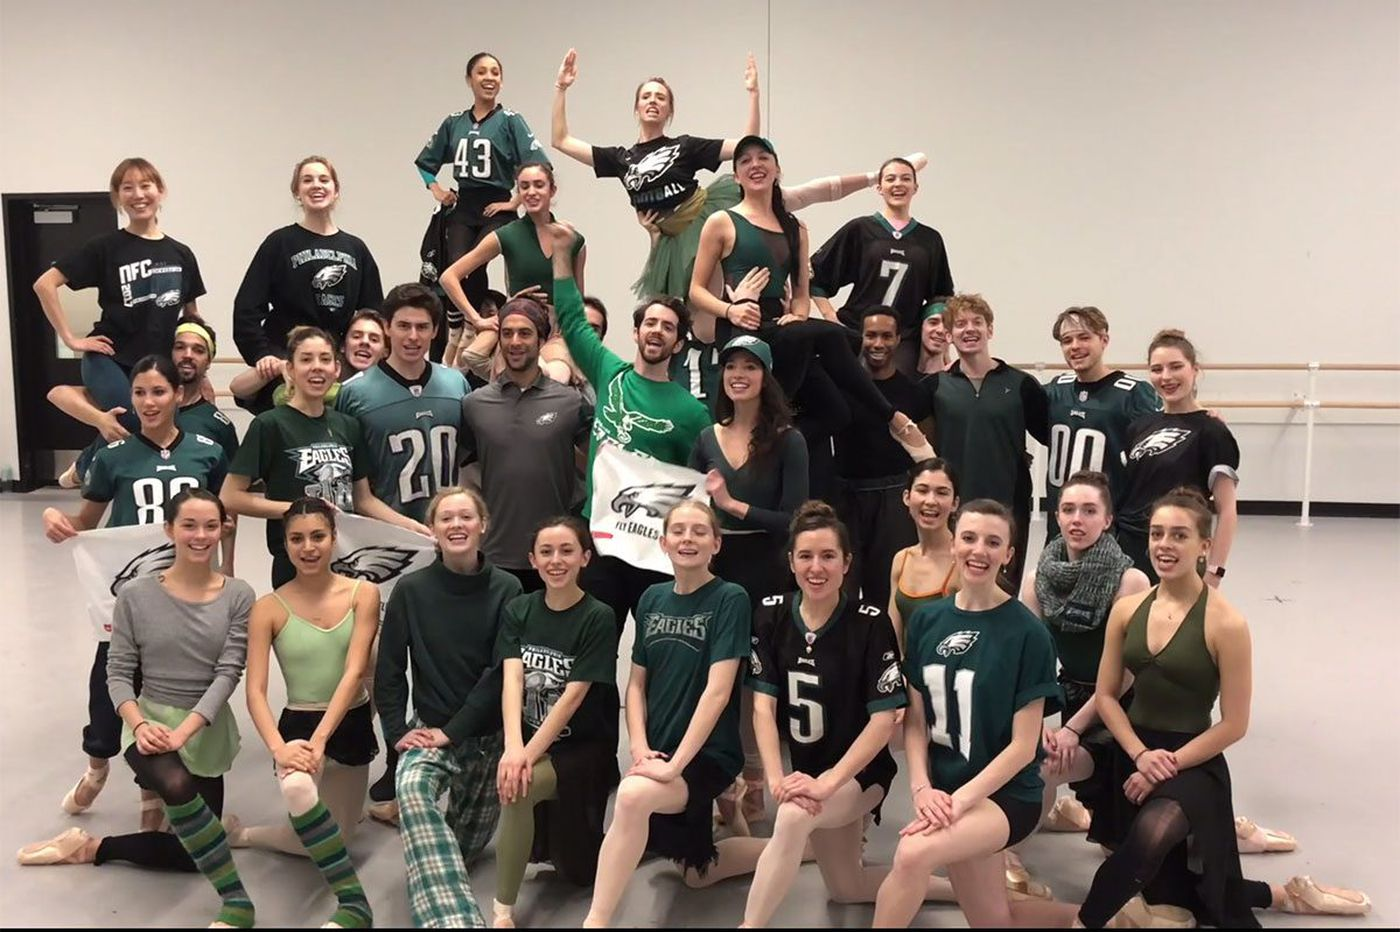 For Super Bowl, Pennsylvania Ballet dancers fly for the Eagles, too